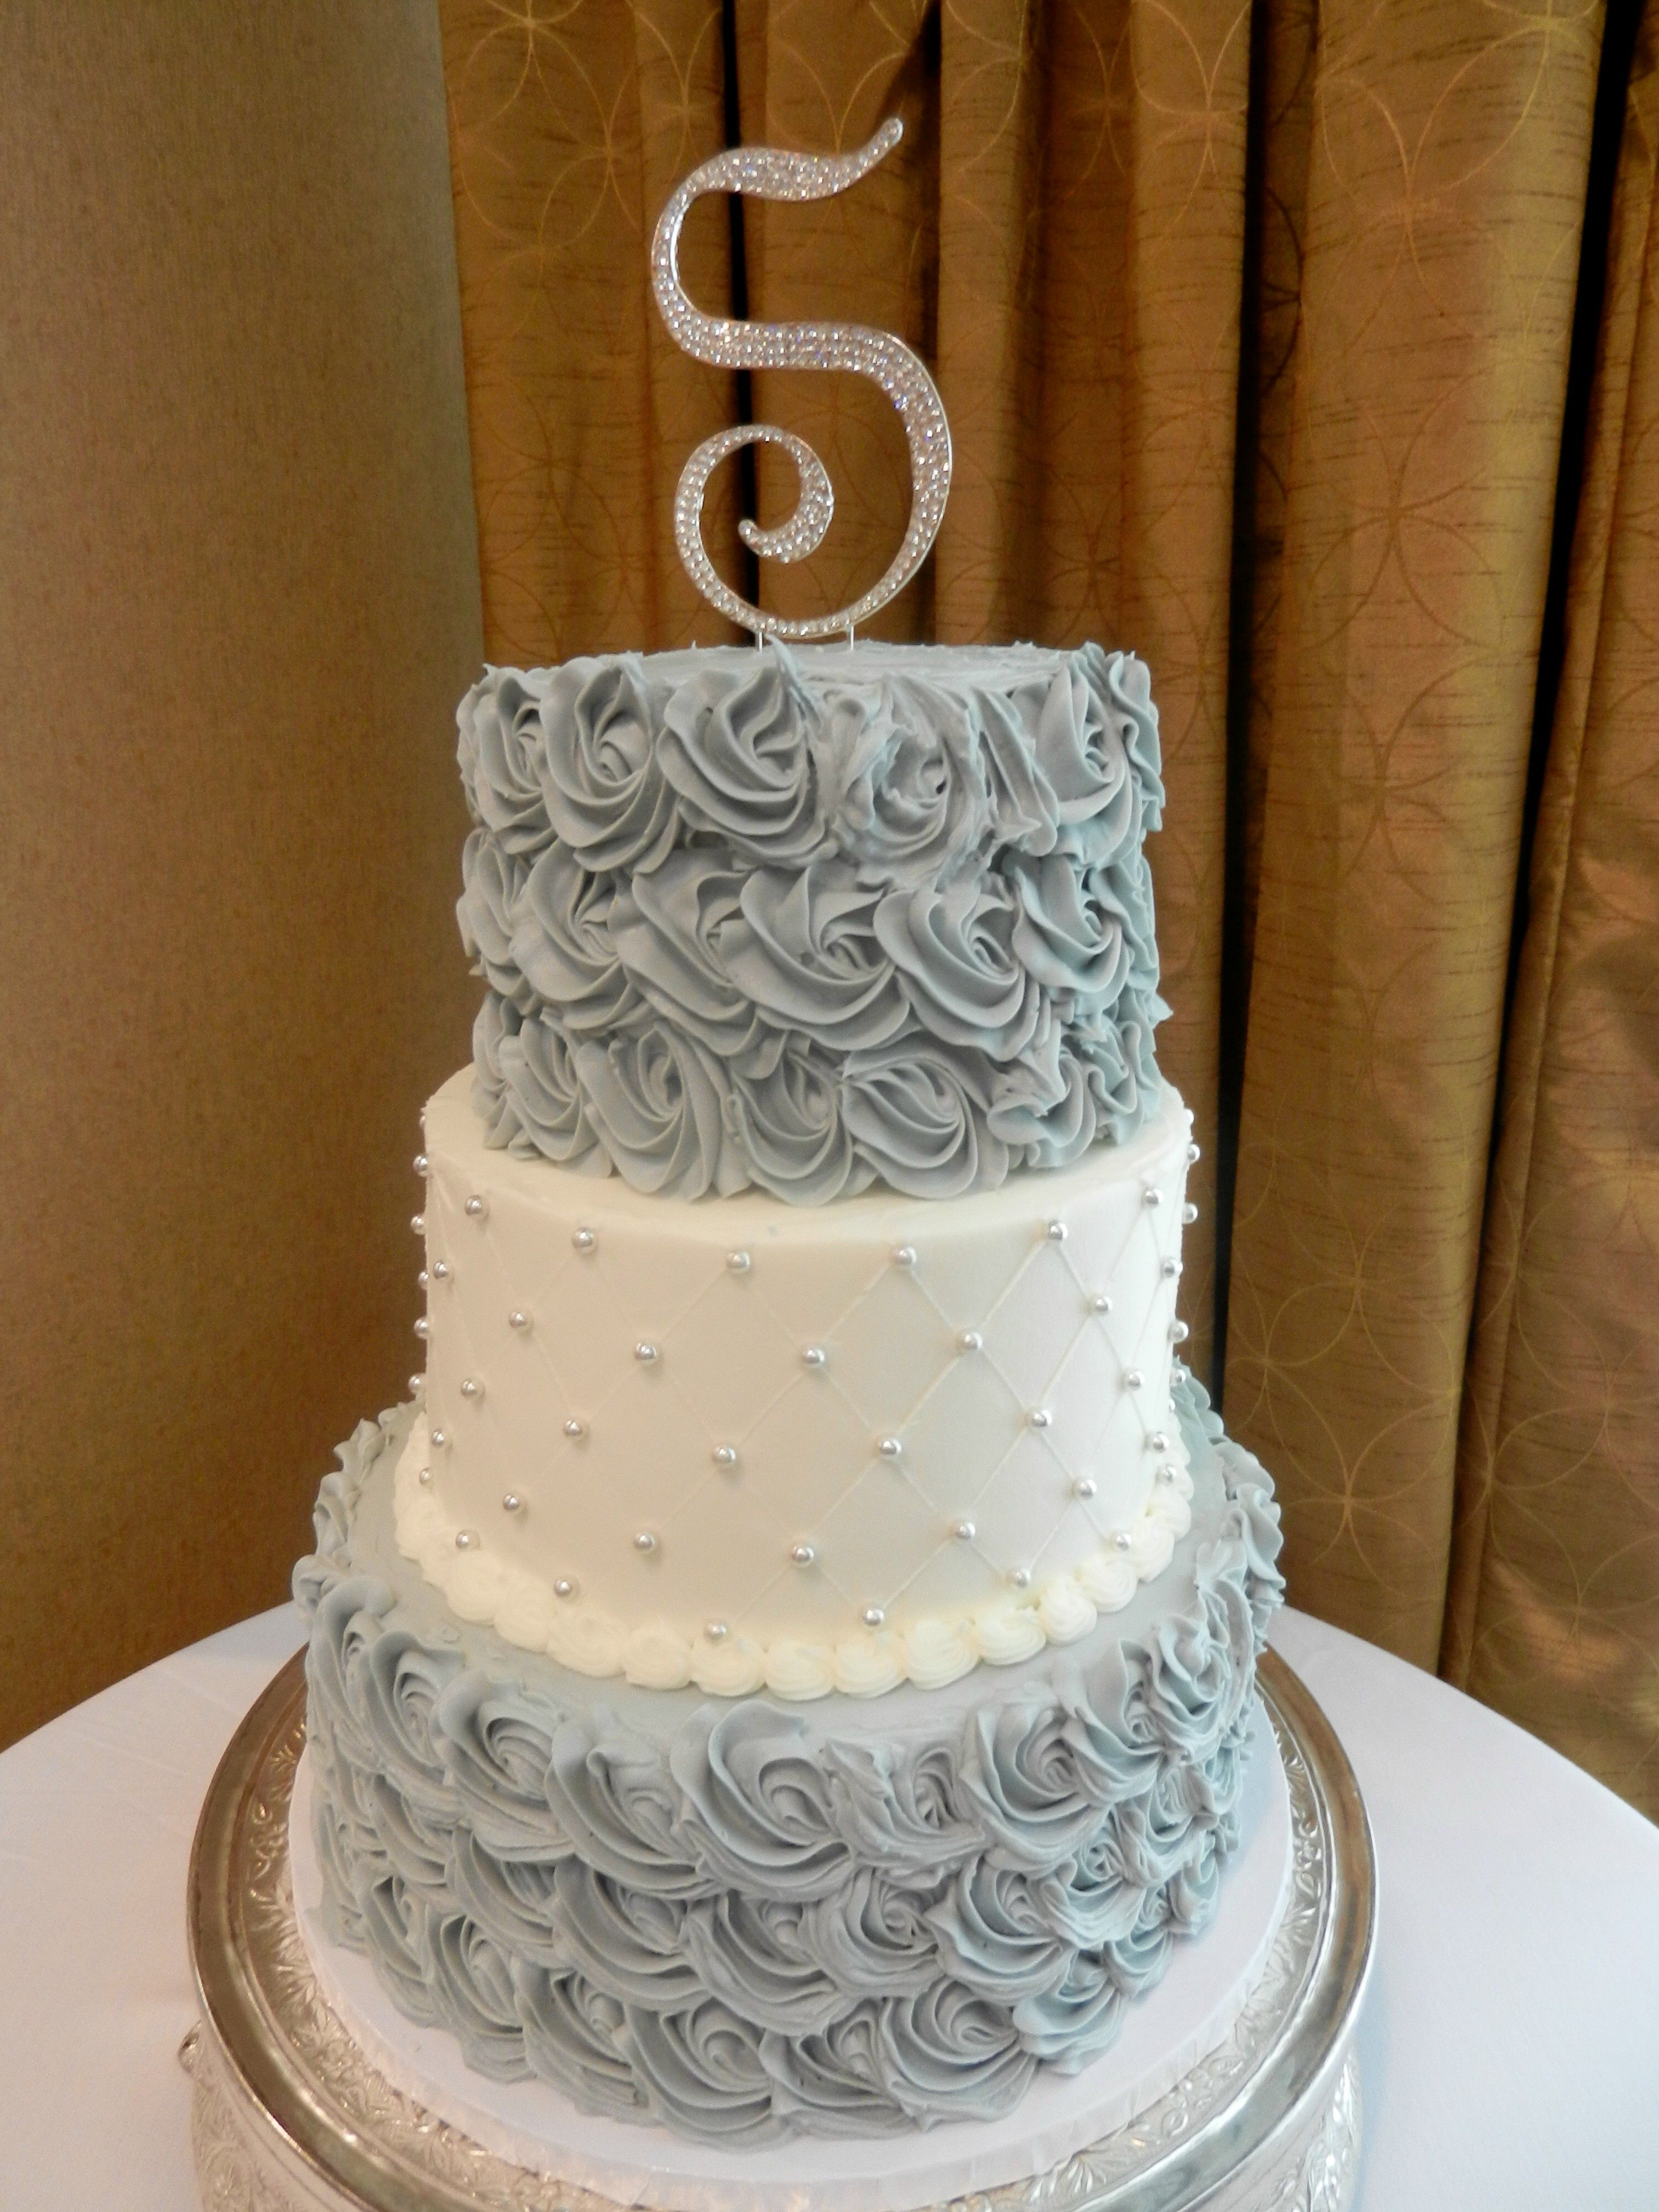 Pewter And Silver Wedding Cake Www.cheesecakeetc.biz Wedding Cakes  Charlotte NC